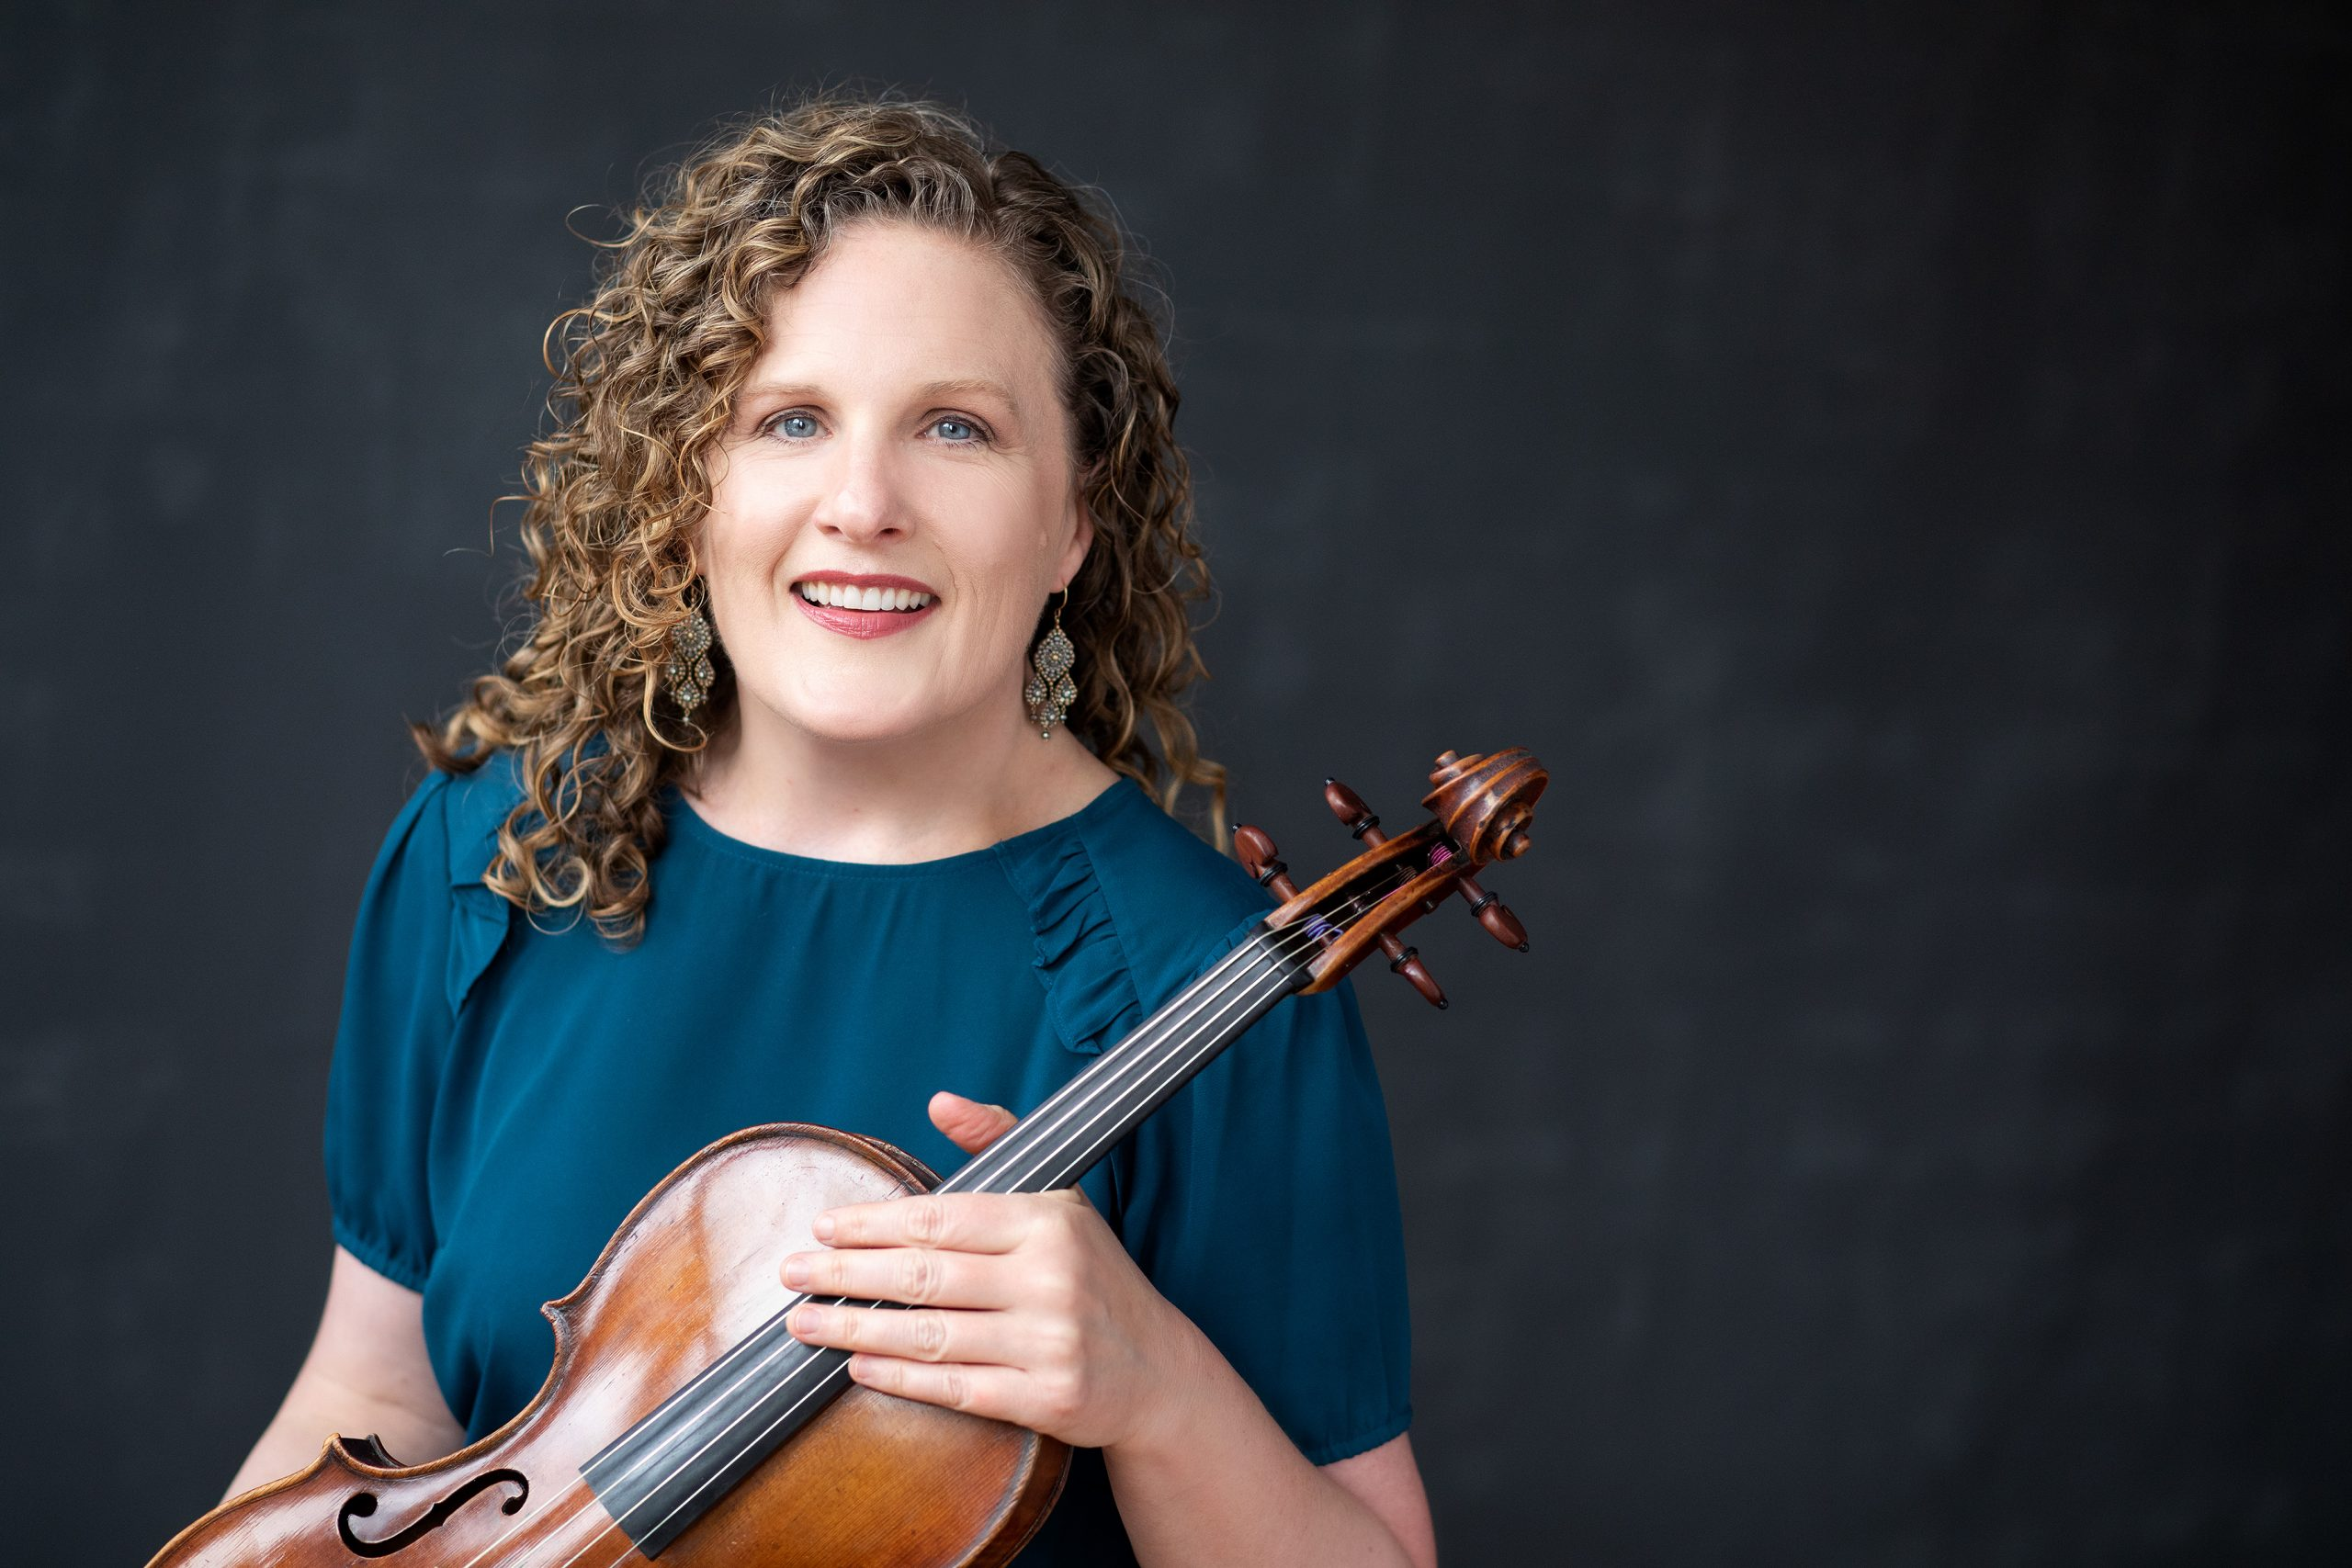 Prof. Kirsten Docter posed with viola